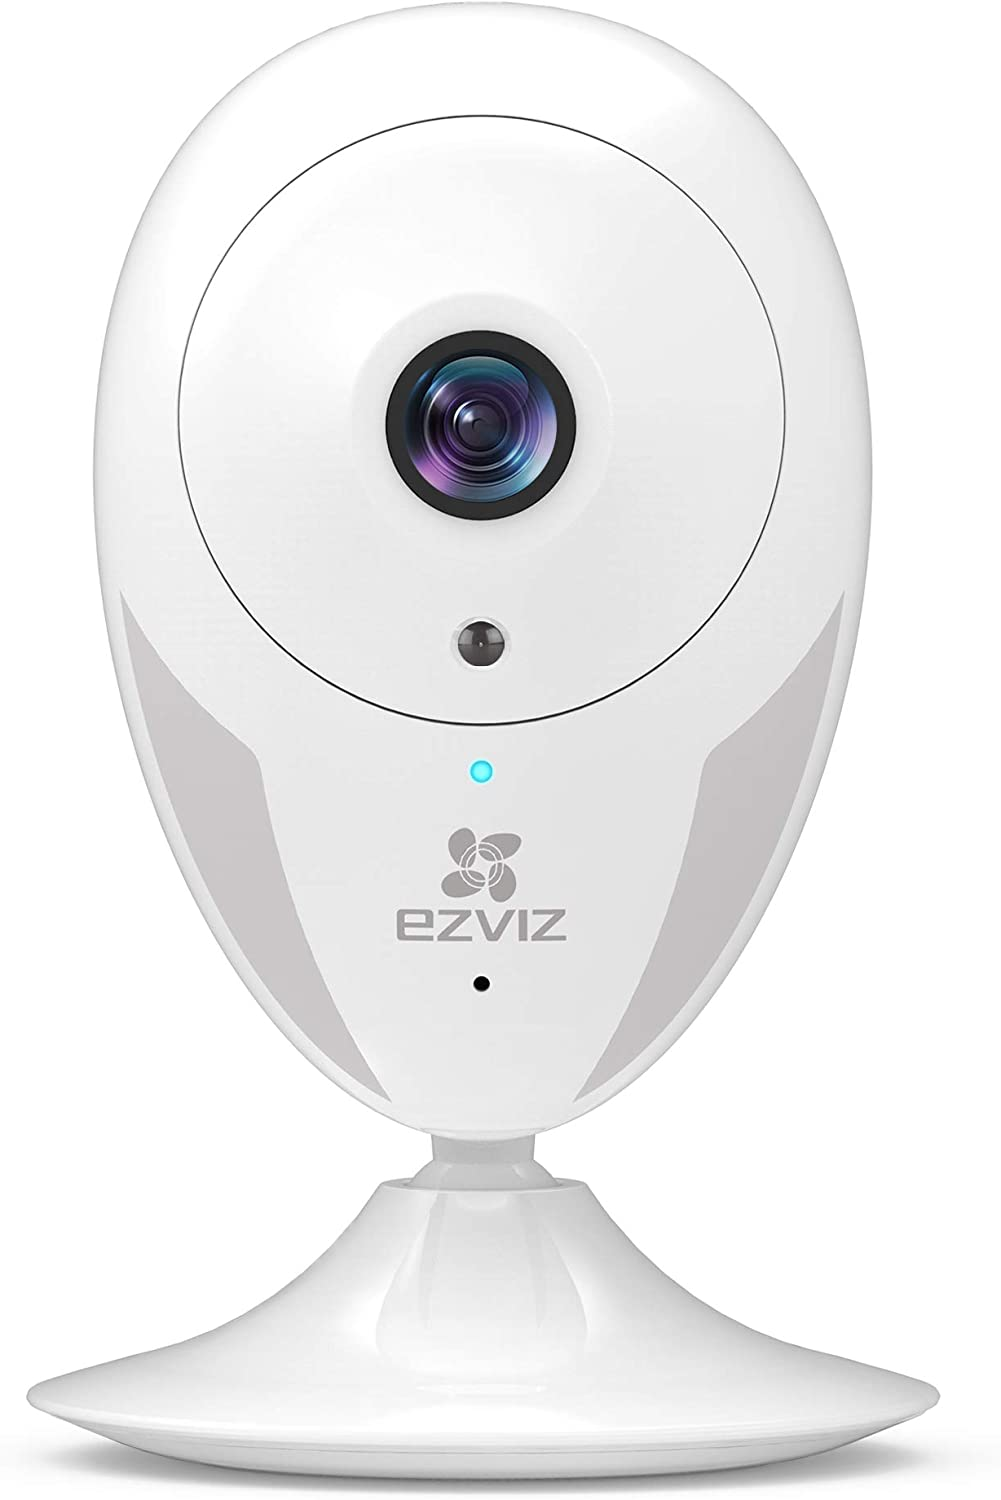 EZVIZ Indoor Wi-Fi Security Camera HD IPC Compatible with Alexa Google Home IFTTT 2.4G WiFi 25ft Night Vision Motion Detection Alert Baby Pet Monitoring 111 Wide Angle Two-Way Audio White CTQ2C